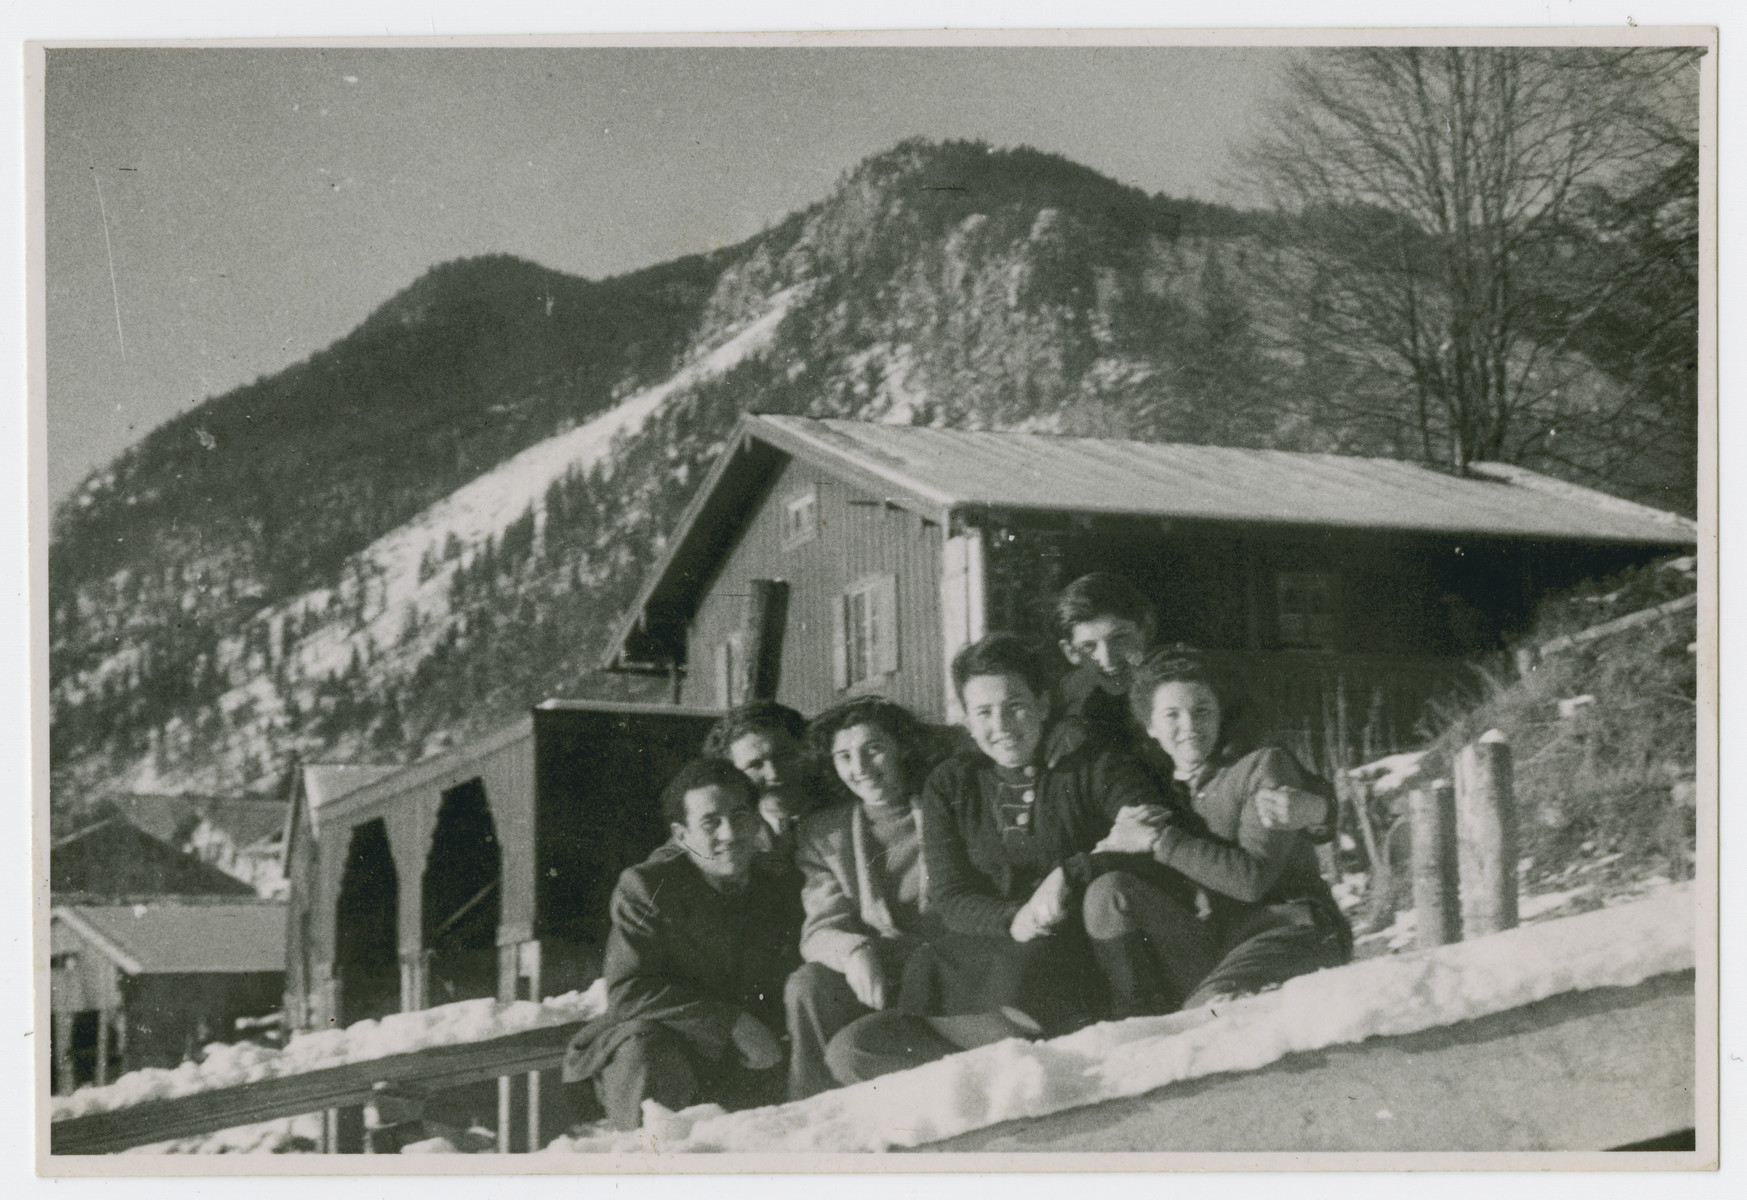 Young people [perhaps from the Eggenfelden displaced persons camp] pose by a mountain chalet.